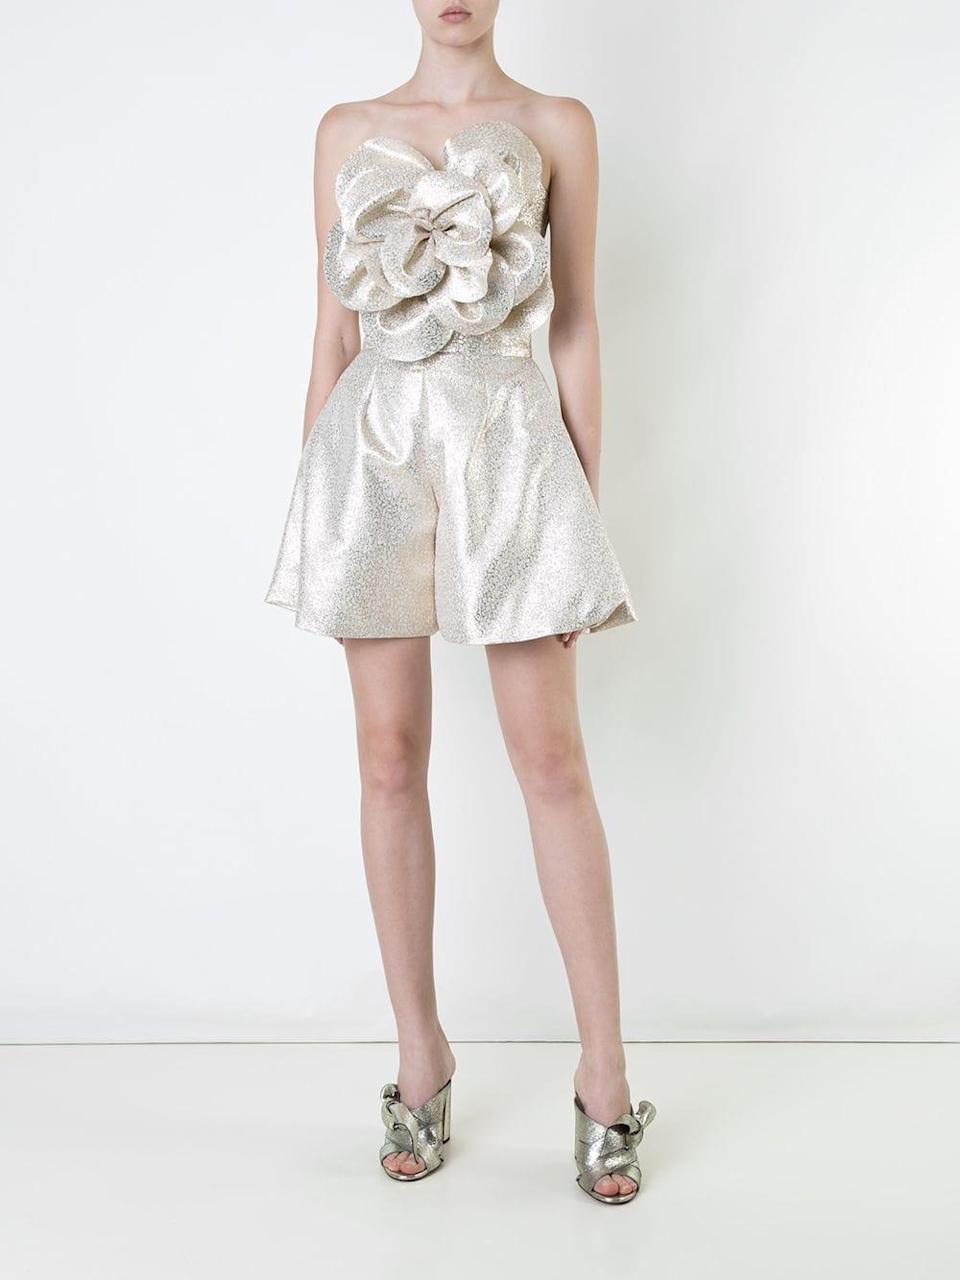 """<h2>Anytime Metallics</h2><br><br>""""The Roaring '20s 2.0 is on everyone's lips, and fittingly metallics are having a major moment — from sequins and glittering paillettes to Glomesh mesh to shiny Lurex. Where sparkle traditionally emerged after twilight, it now qualifies a perfectly acceptable choice with denim for a bodega run. Anything in the interest of sparking joy!""""<br><br> - Celenie Seidel, Senior Womenswear Editor at Farfetch<br><br><strong>Bambah</strong> Glitter Pleated Culottes, $, available at <a href=""""https://go.skimresources.com/?id=30283X879131&url=https%3A%2F%2Fwww.farfetch.com%2Fshopping%2Fwomen%2Fbambah-glitter-pleated-culottes-item-12118911.aspx%3Fstoreid%3D10735"""" rel=""""nofollow noopener"""" target=""""_blank"""" data-ylk=""""slk:Farfetch"""" class=""""link rapid-noclick-resp"""">Farfetch</a>"""